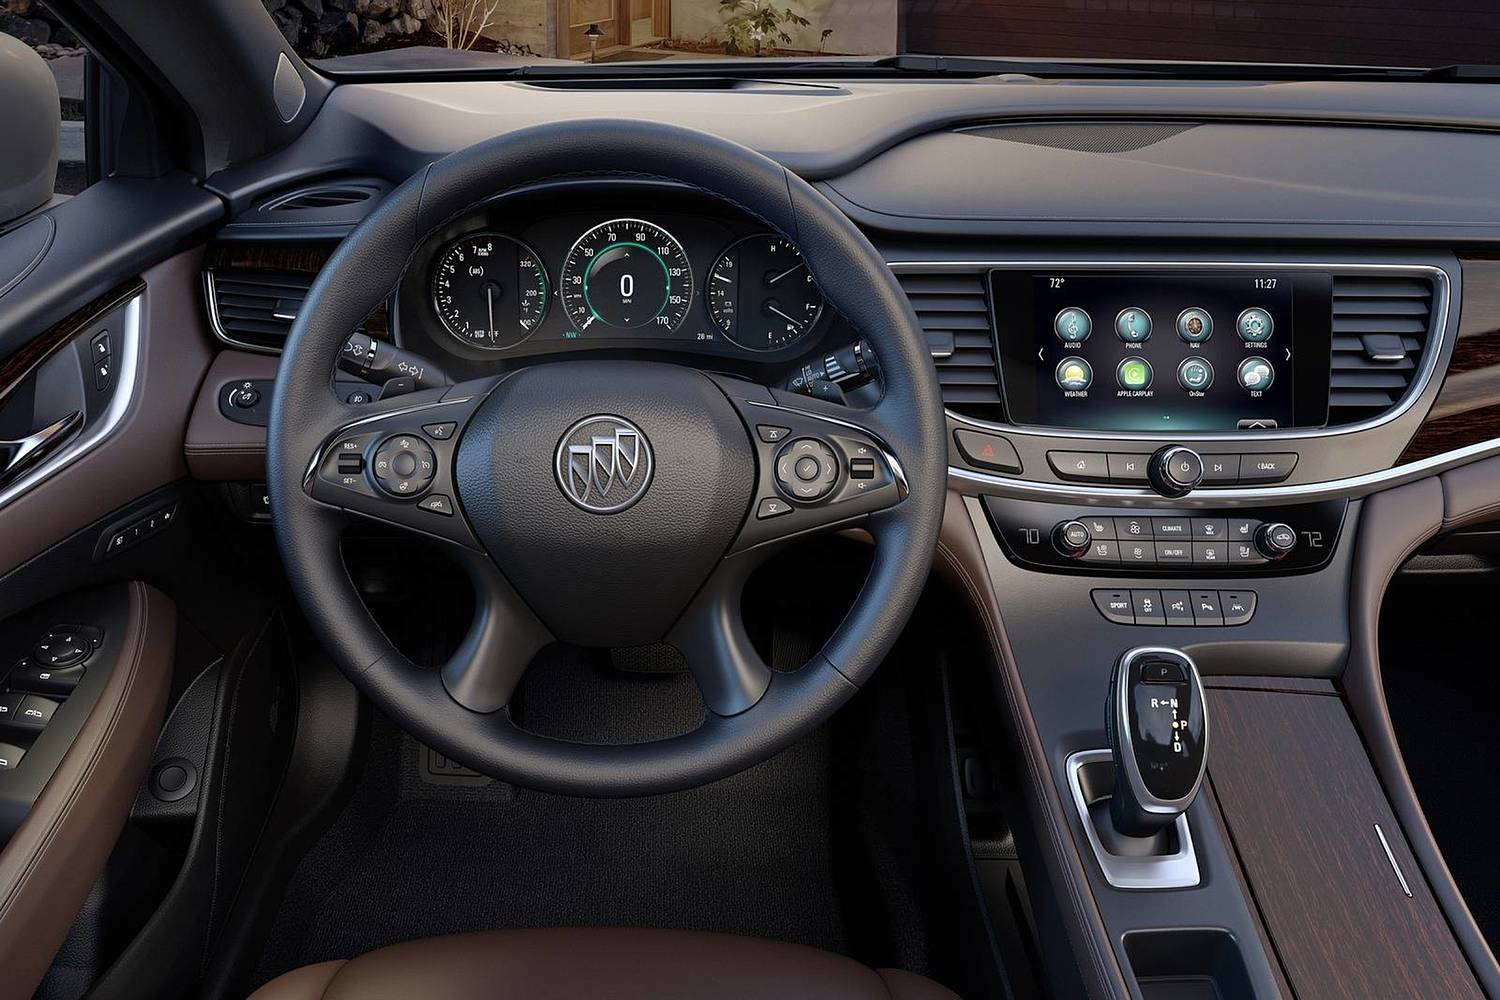 2018 Buick LaCrosse Premium Sedan Steering Wheel Detail